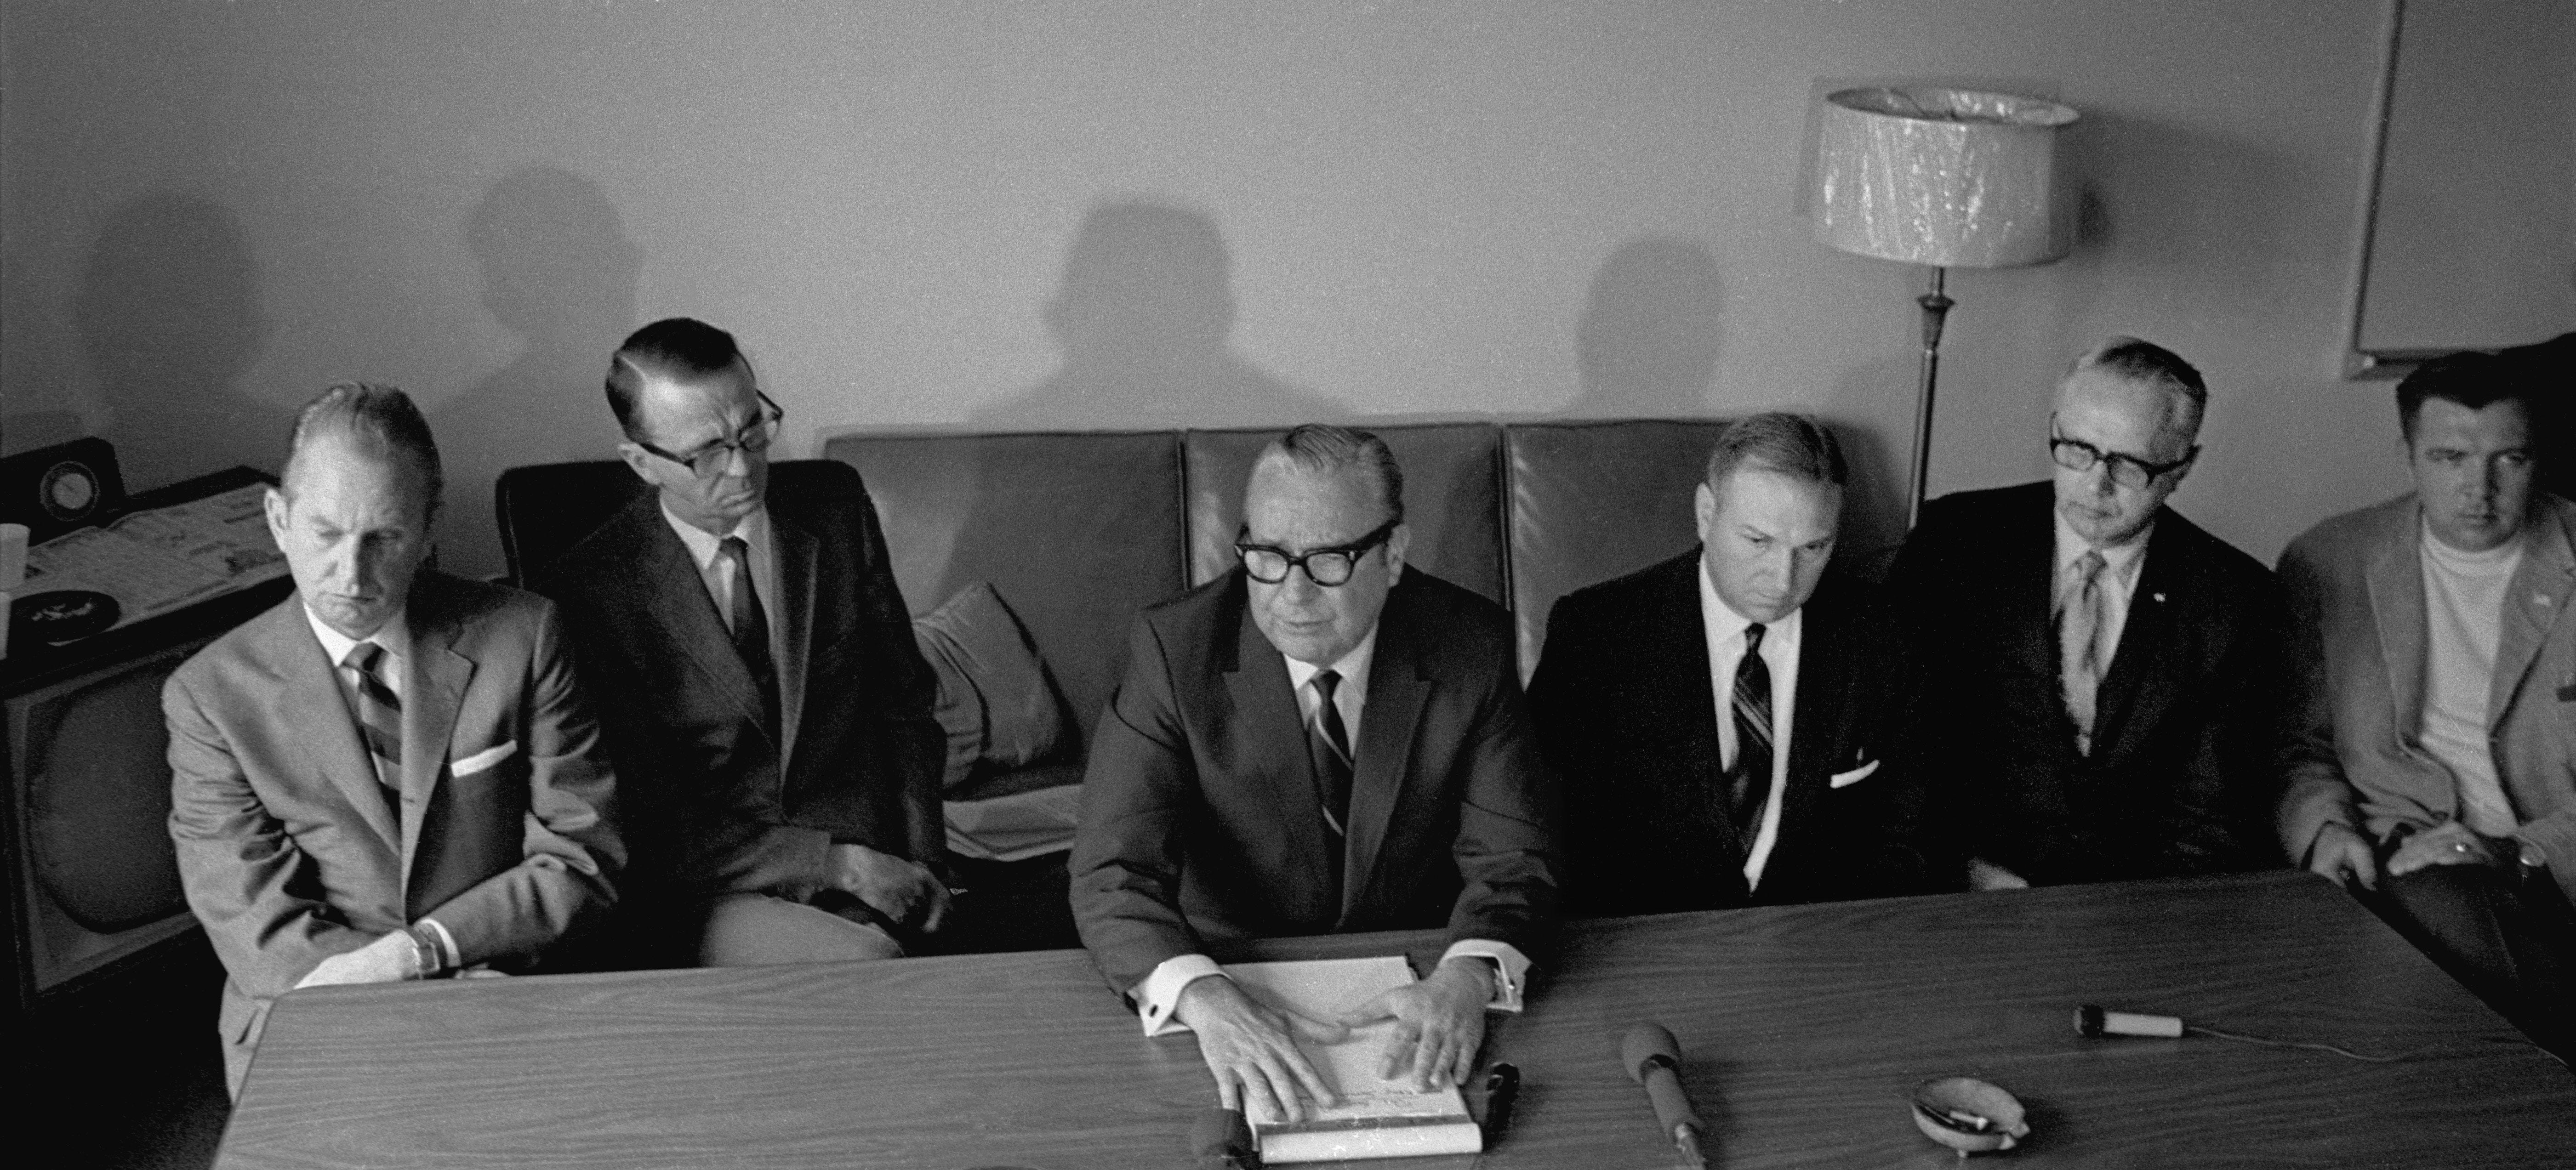 Ohio Gov. James Rhodes, at center with papers in his hands, holds a press conference at Kent State University on May 3, 1970, the morning after the ROTC building on campus was burned.  To the left of Rhodes is LeRoy Satrom, the Kent mayor who requested the National Guard. To the right is Maj. Gen. Sylvester T. Del Corso, the adjutant general who headed the Ohio National Guard units on campus on May 4, 1970.